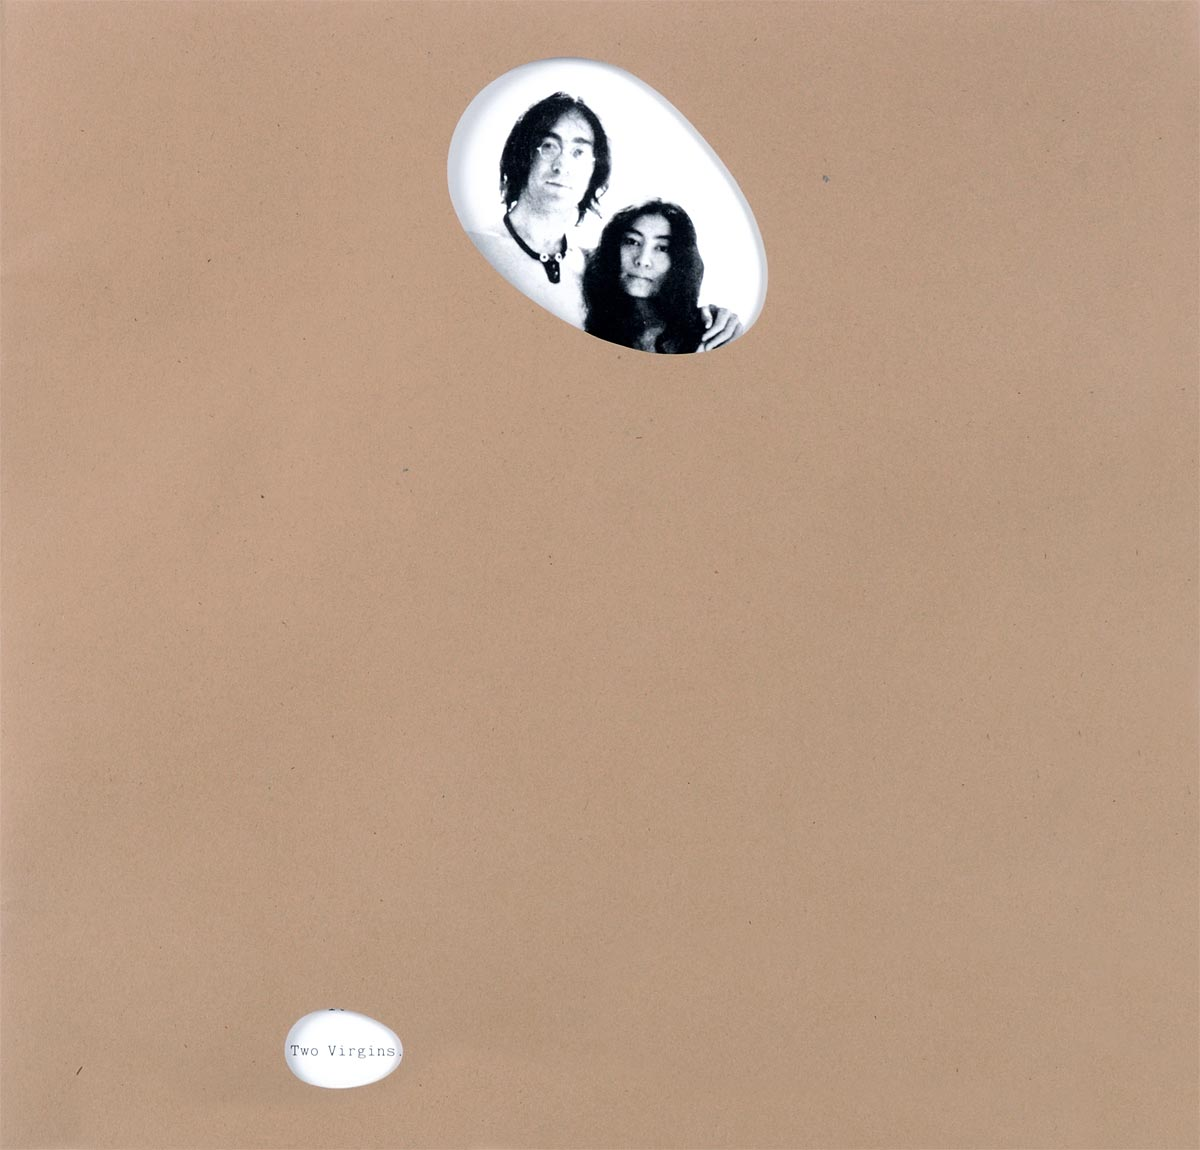 John Lennon And Yoko Ono. Unfinished Music No. 1: Two Virgins (LP)